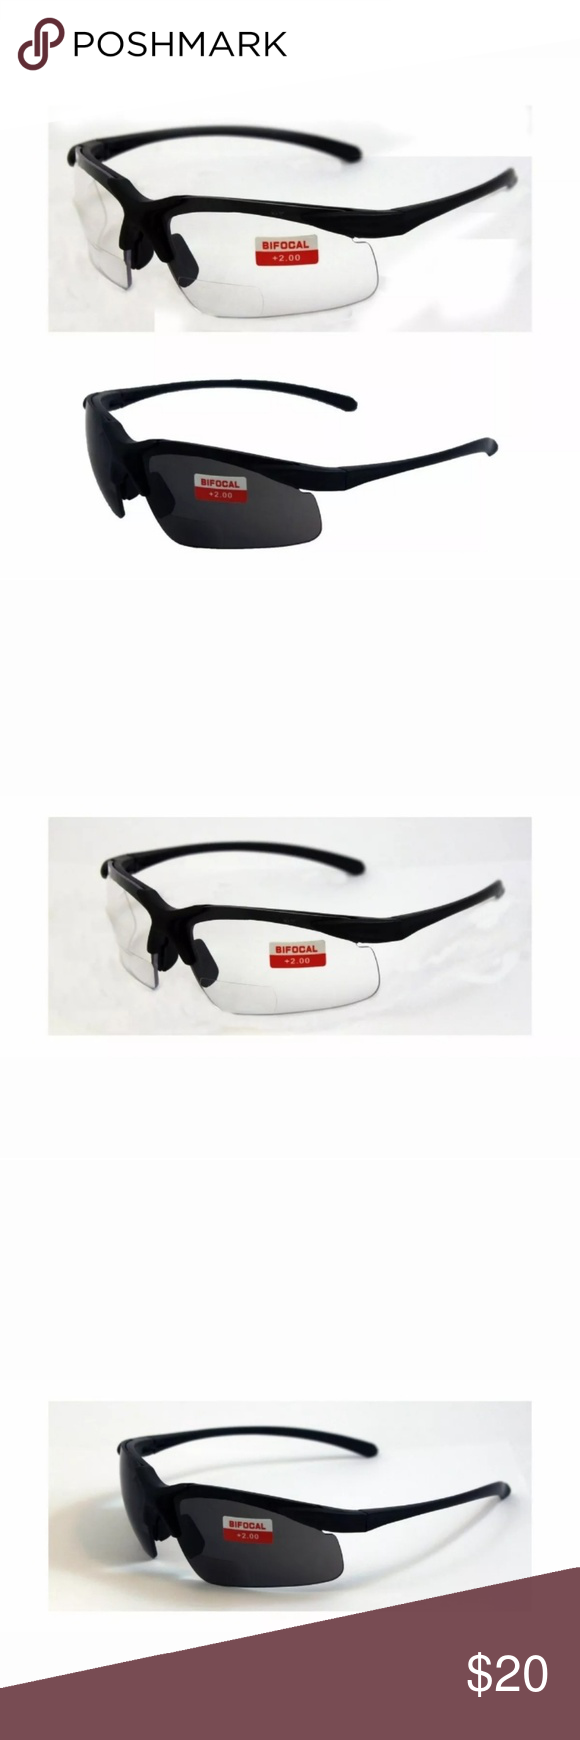 2 Bifocal Z87 Safety Glasses 2.0 grocery store Boutique